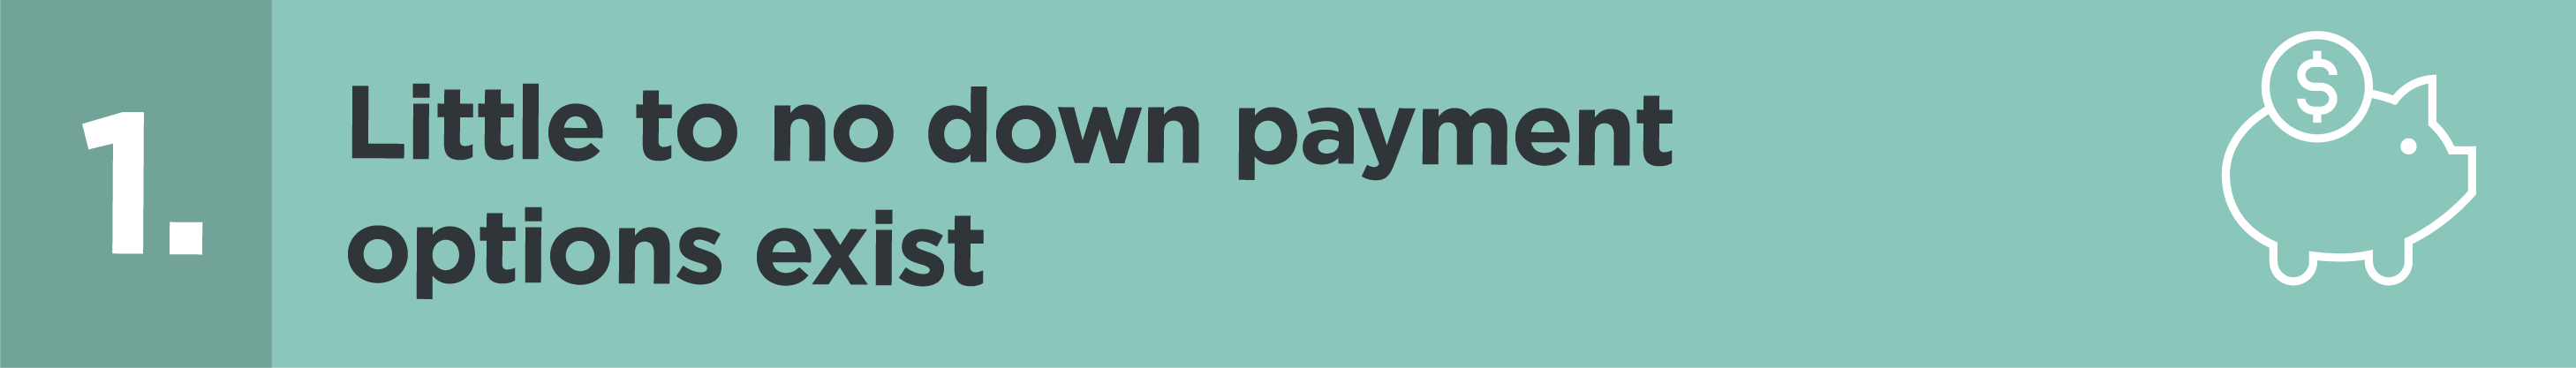 Little to no down payment options exist | blog.phmc.com